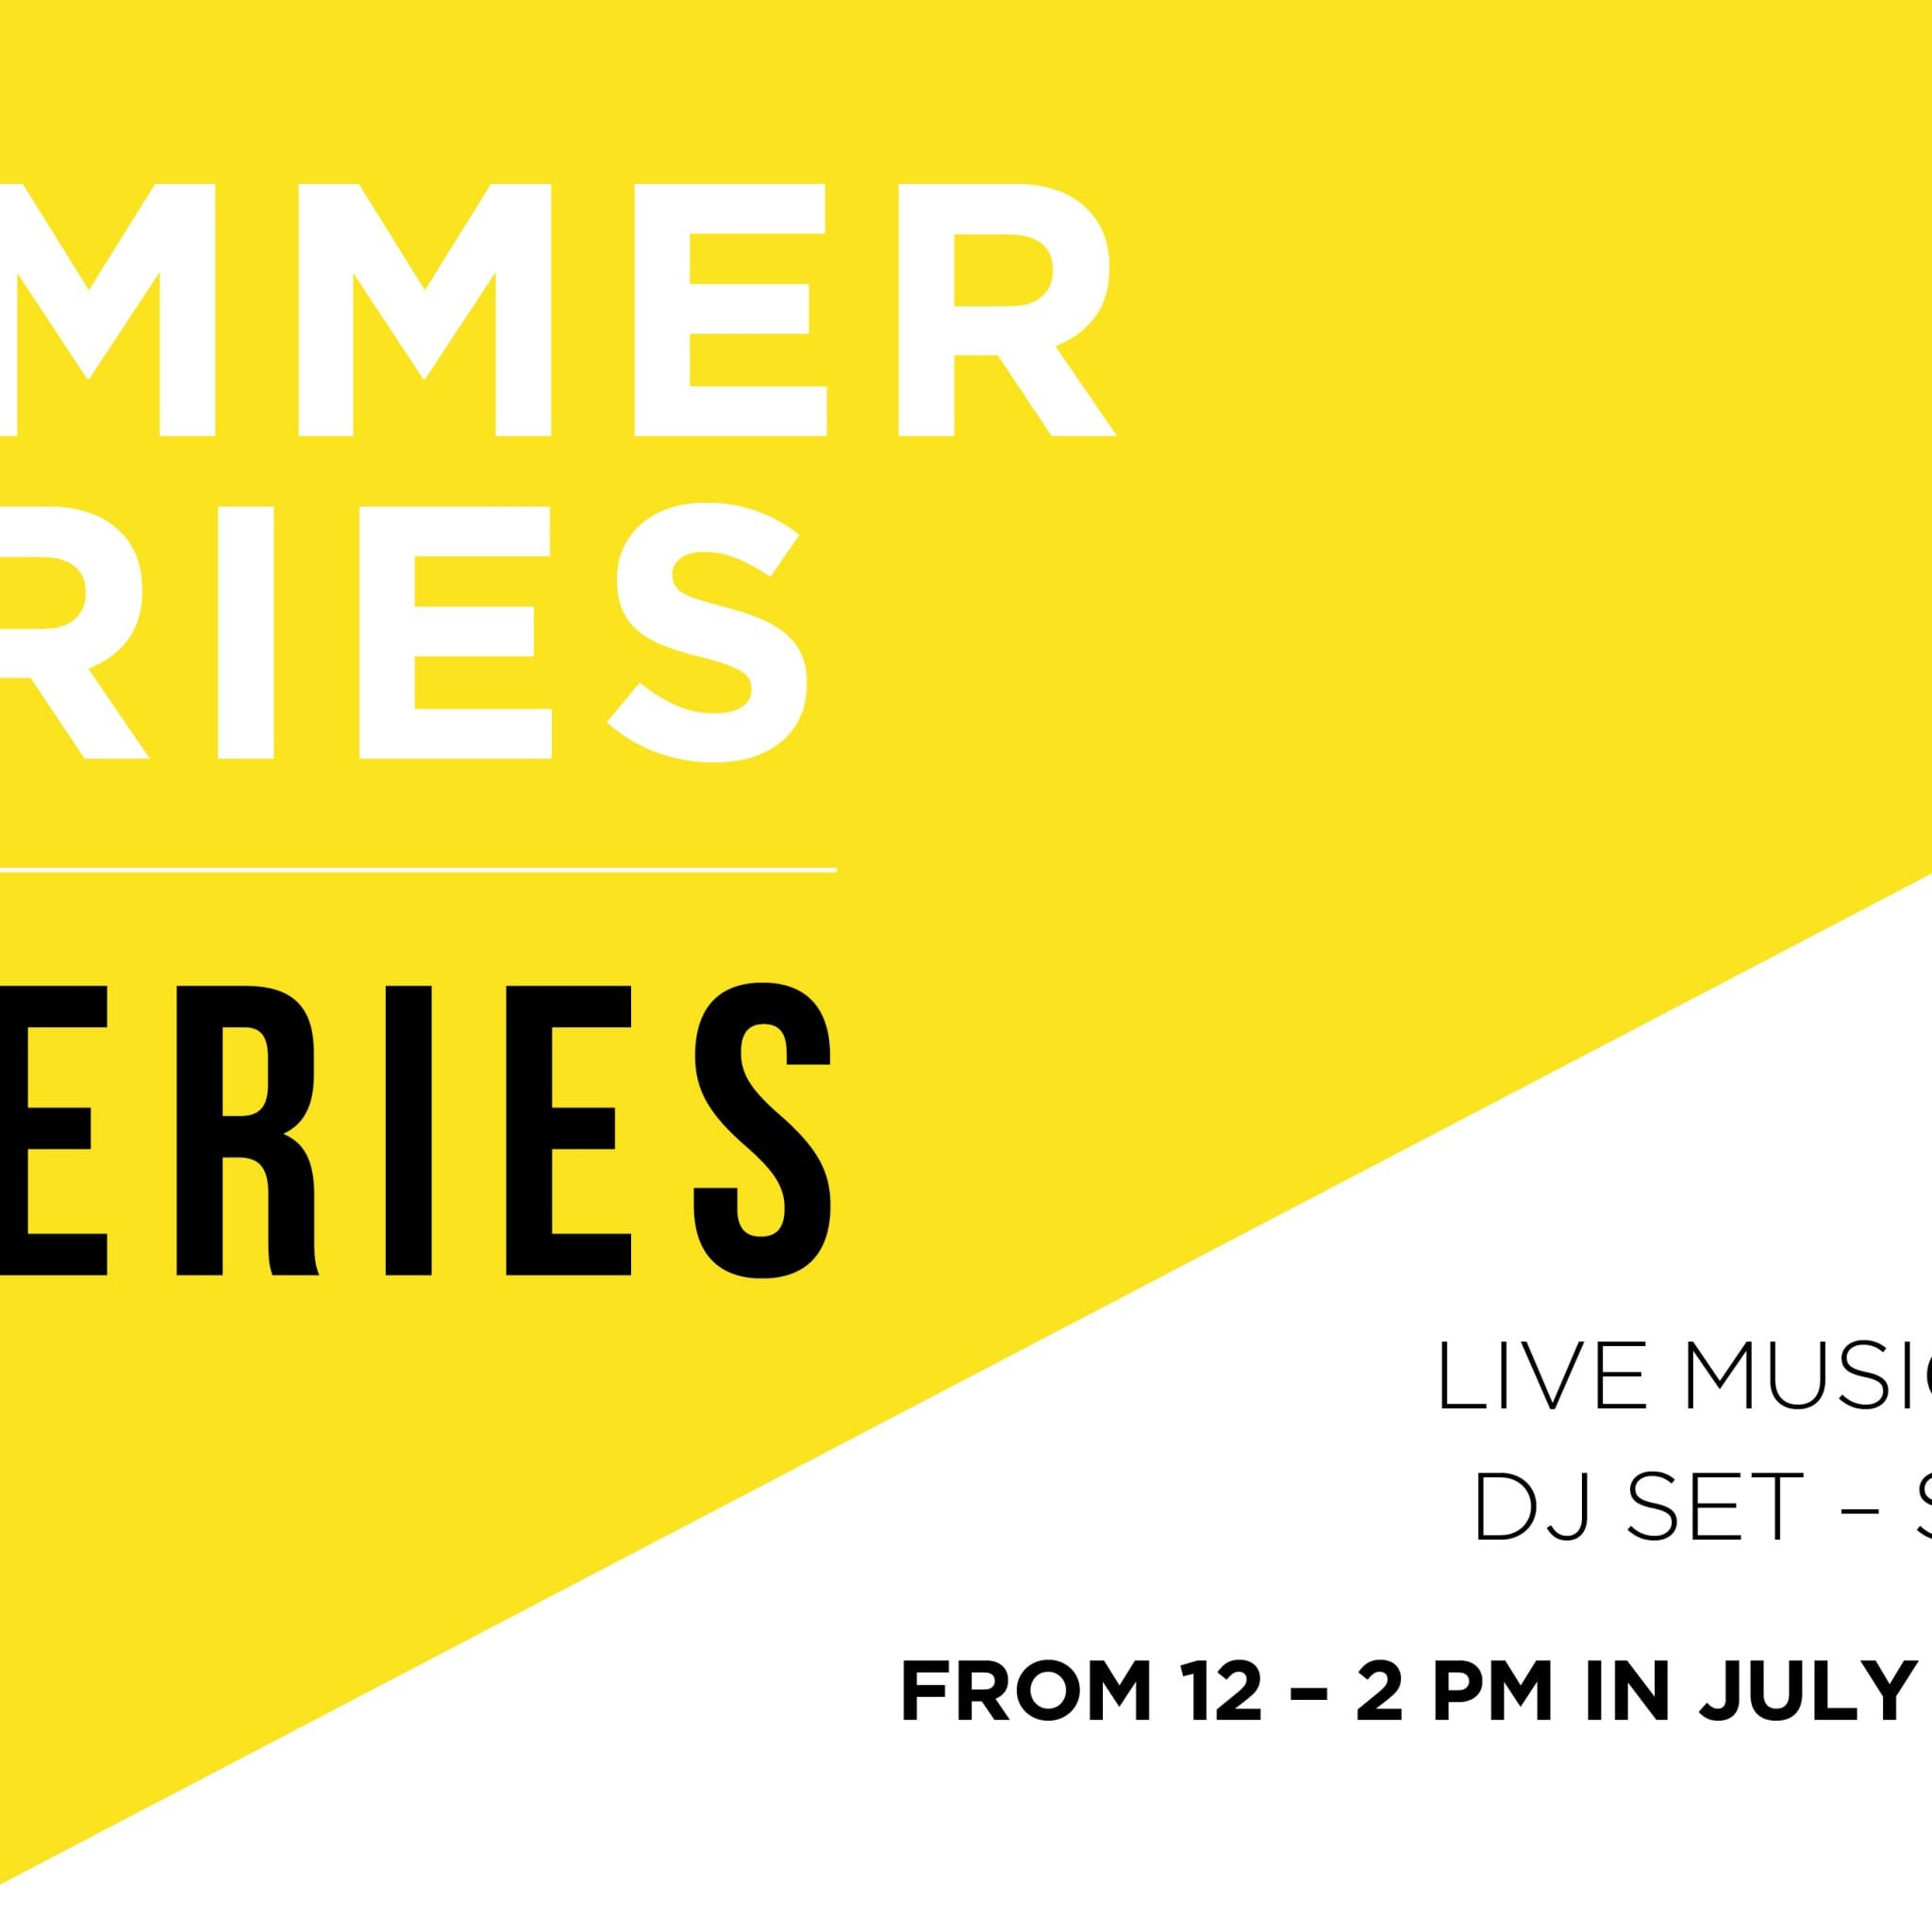 Summer Series at The City of Lougheed